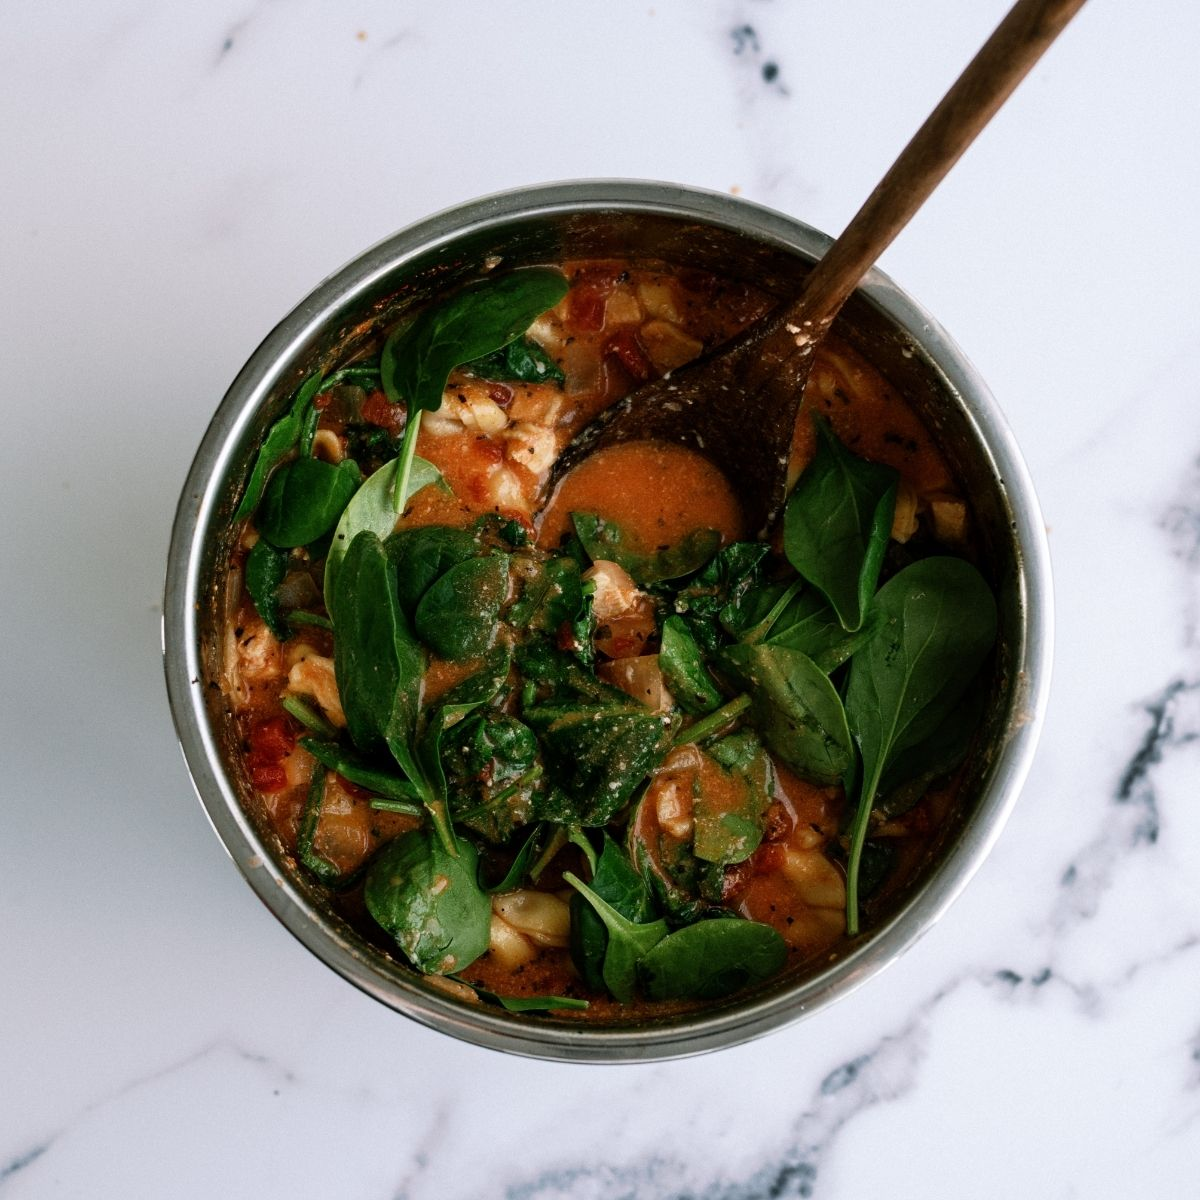 Spinach in Instant Pot for Instant Pot Creamy Tortellini Soup